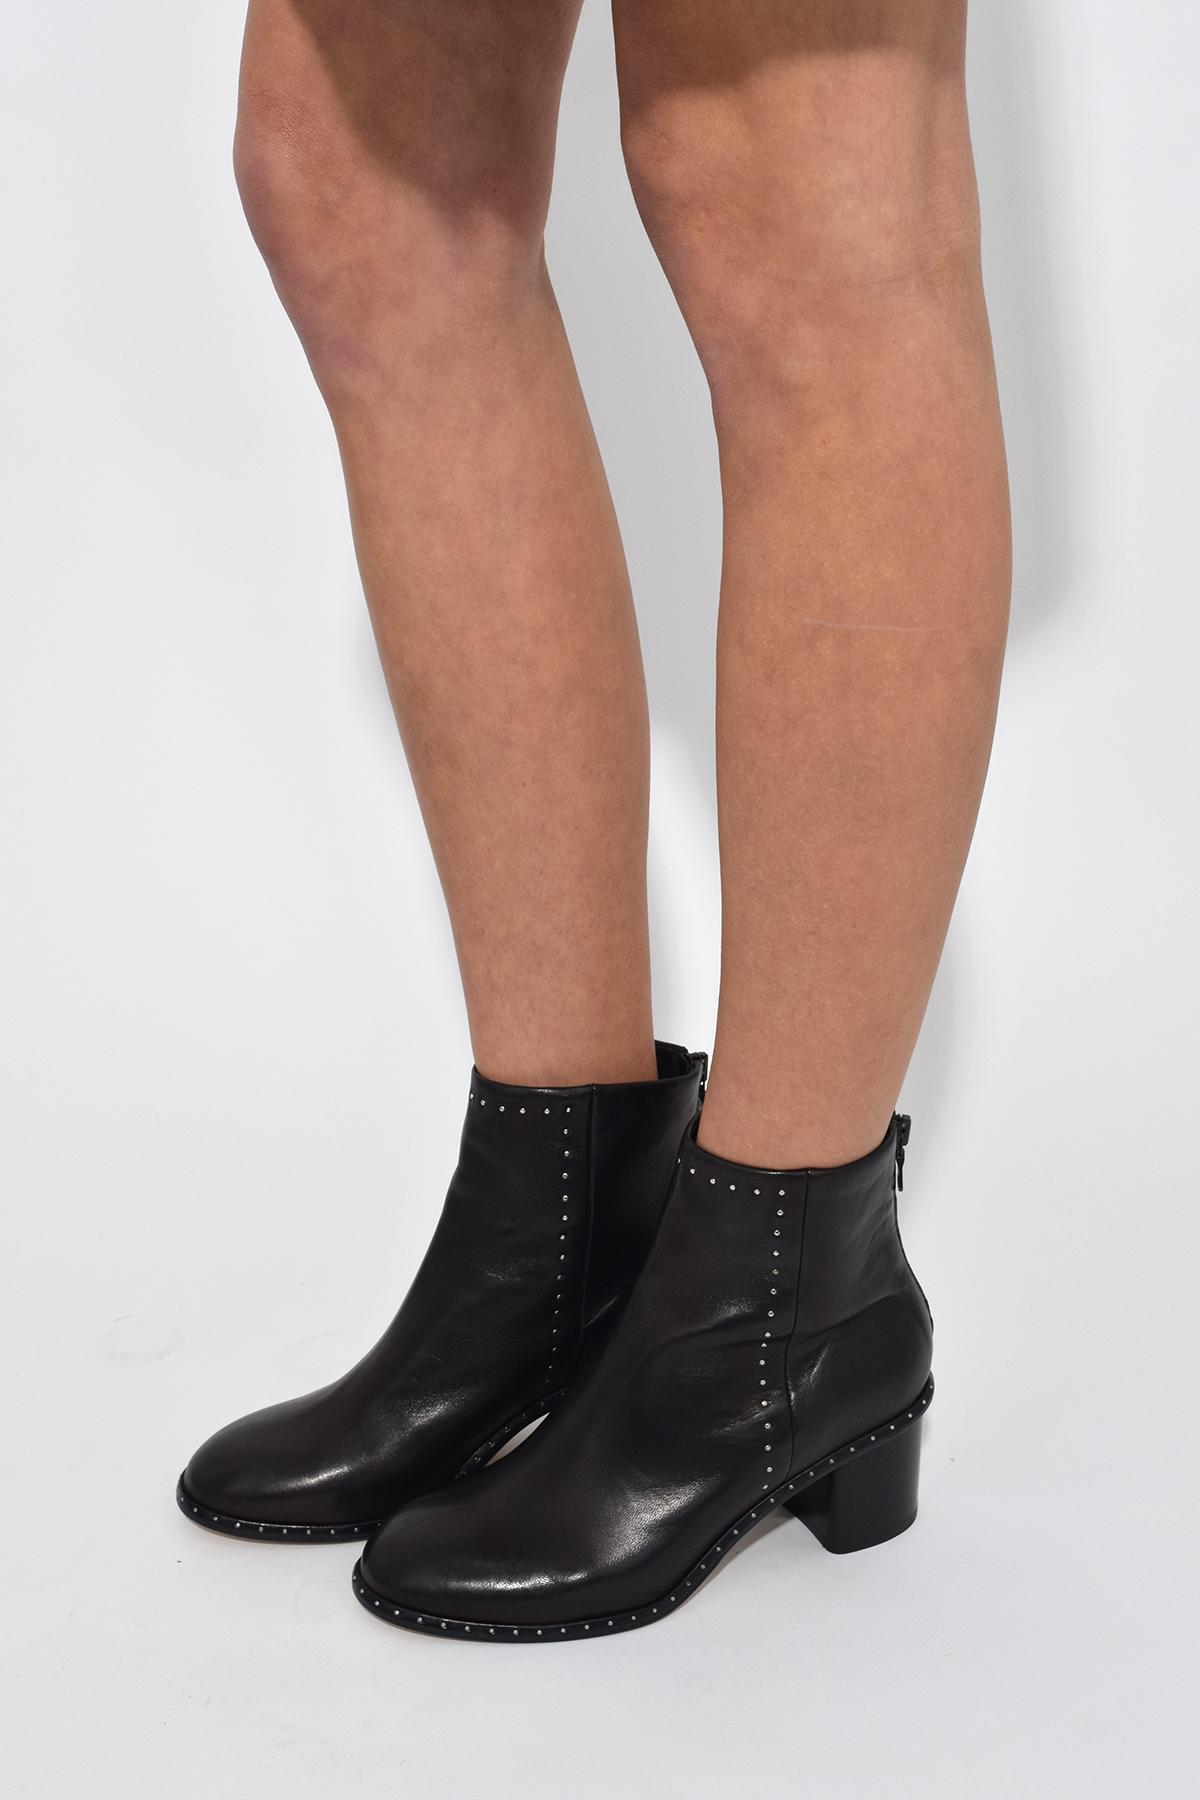 ab93c881828 Gallery. Previously sold at  Hampden · Women s Studded Boots ...